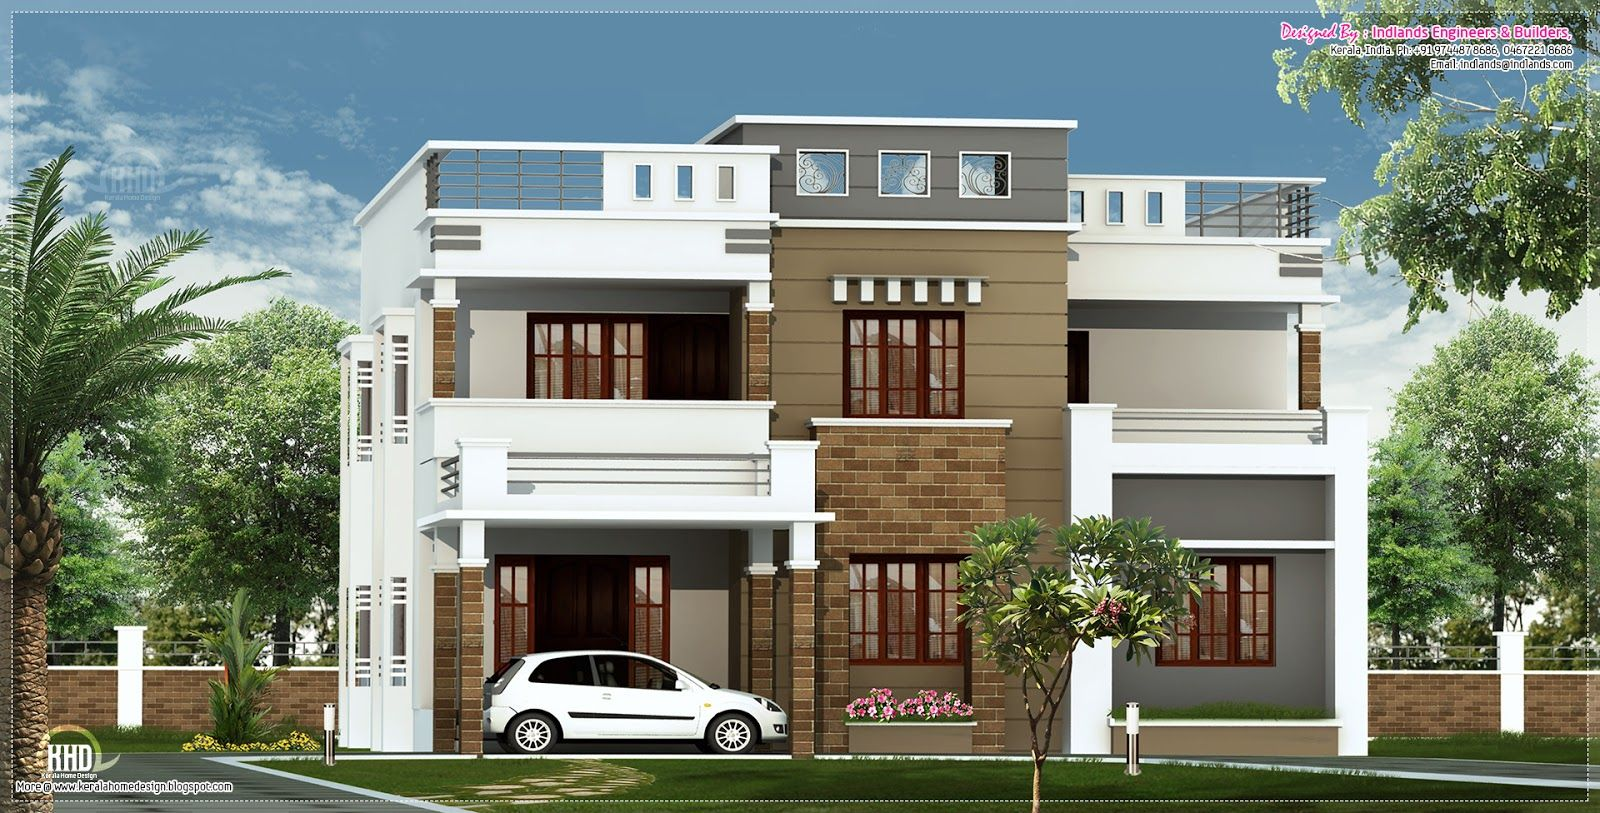 4 bedroom house with roof terrace plans google search house elevation indian pinterest - D home design front elevation ...